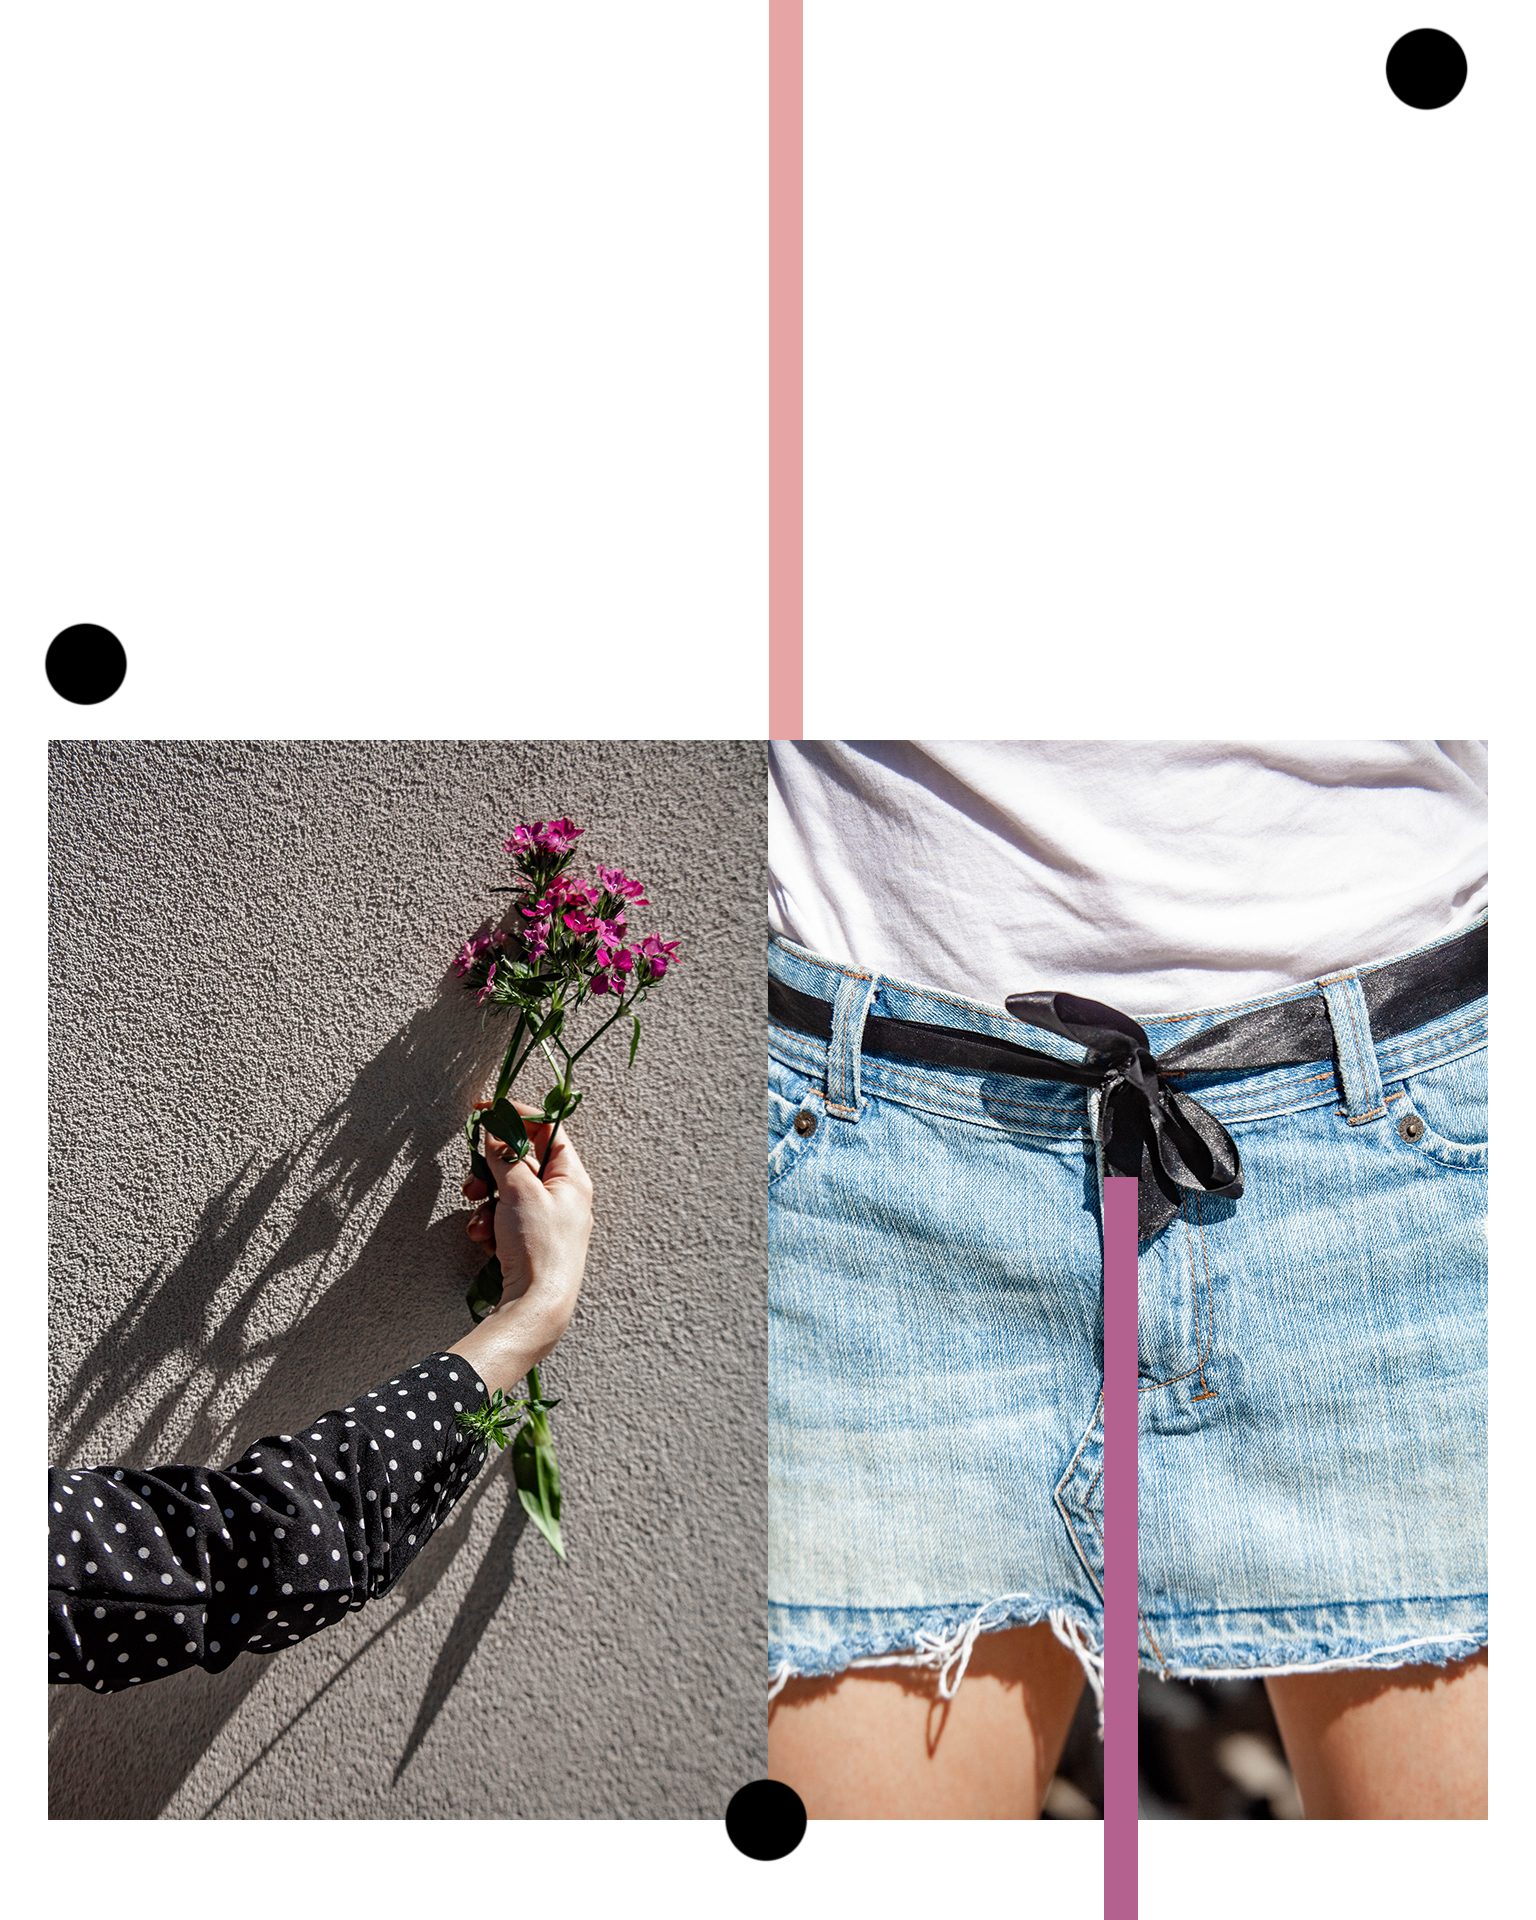 Graphic Design and Fashion Flowers mixed with Polka Dots